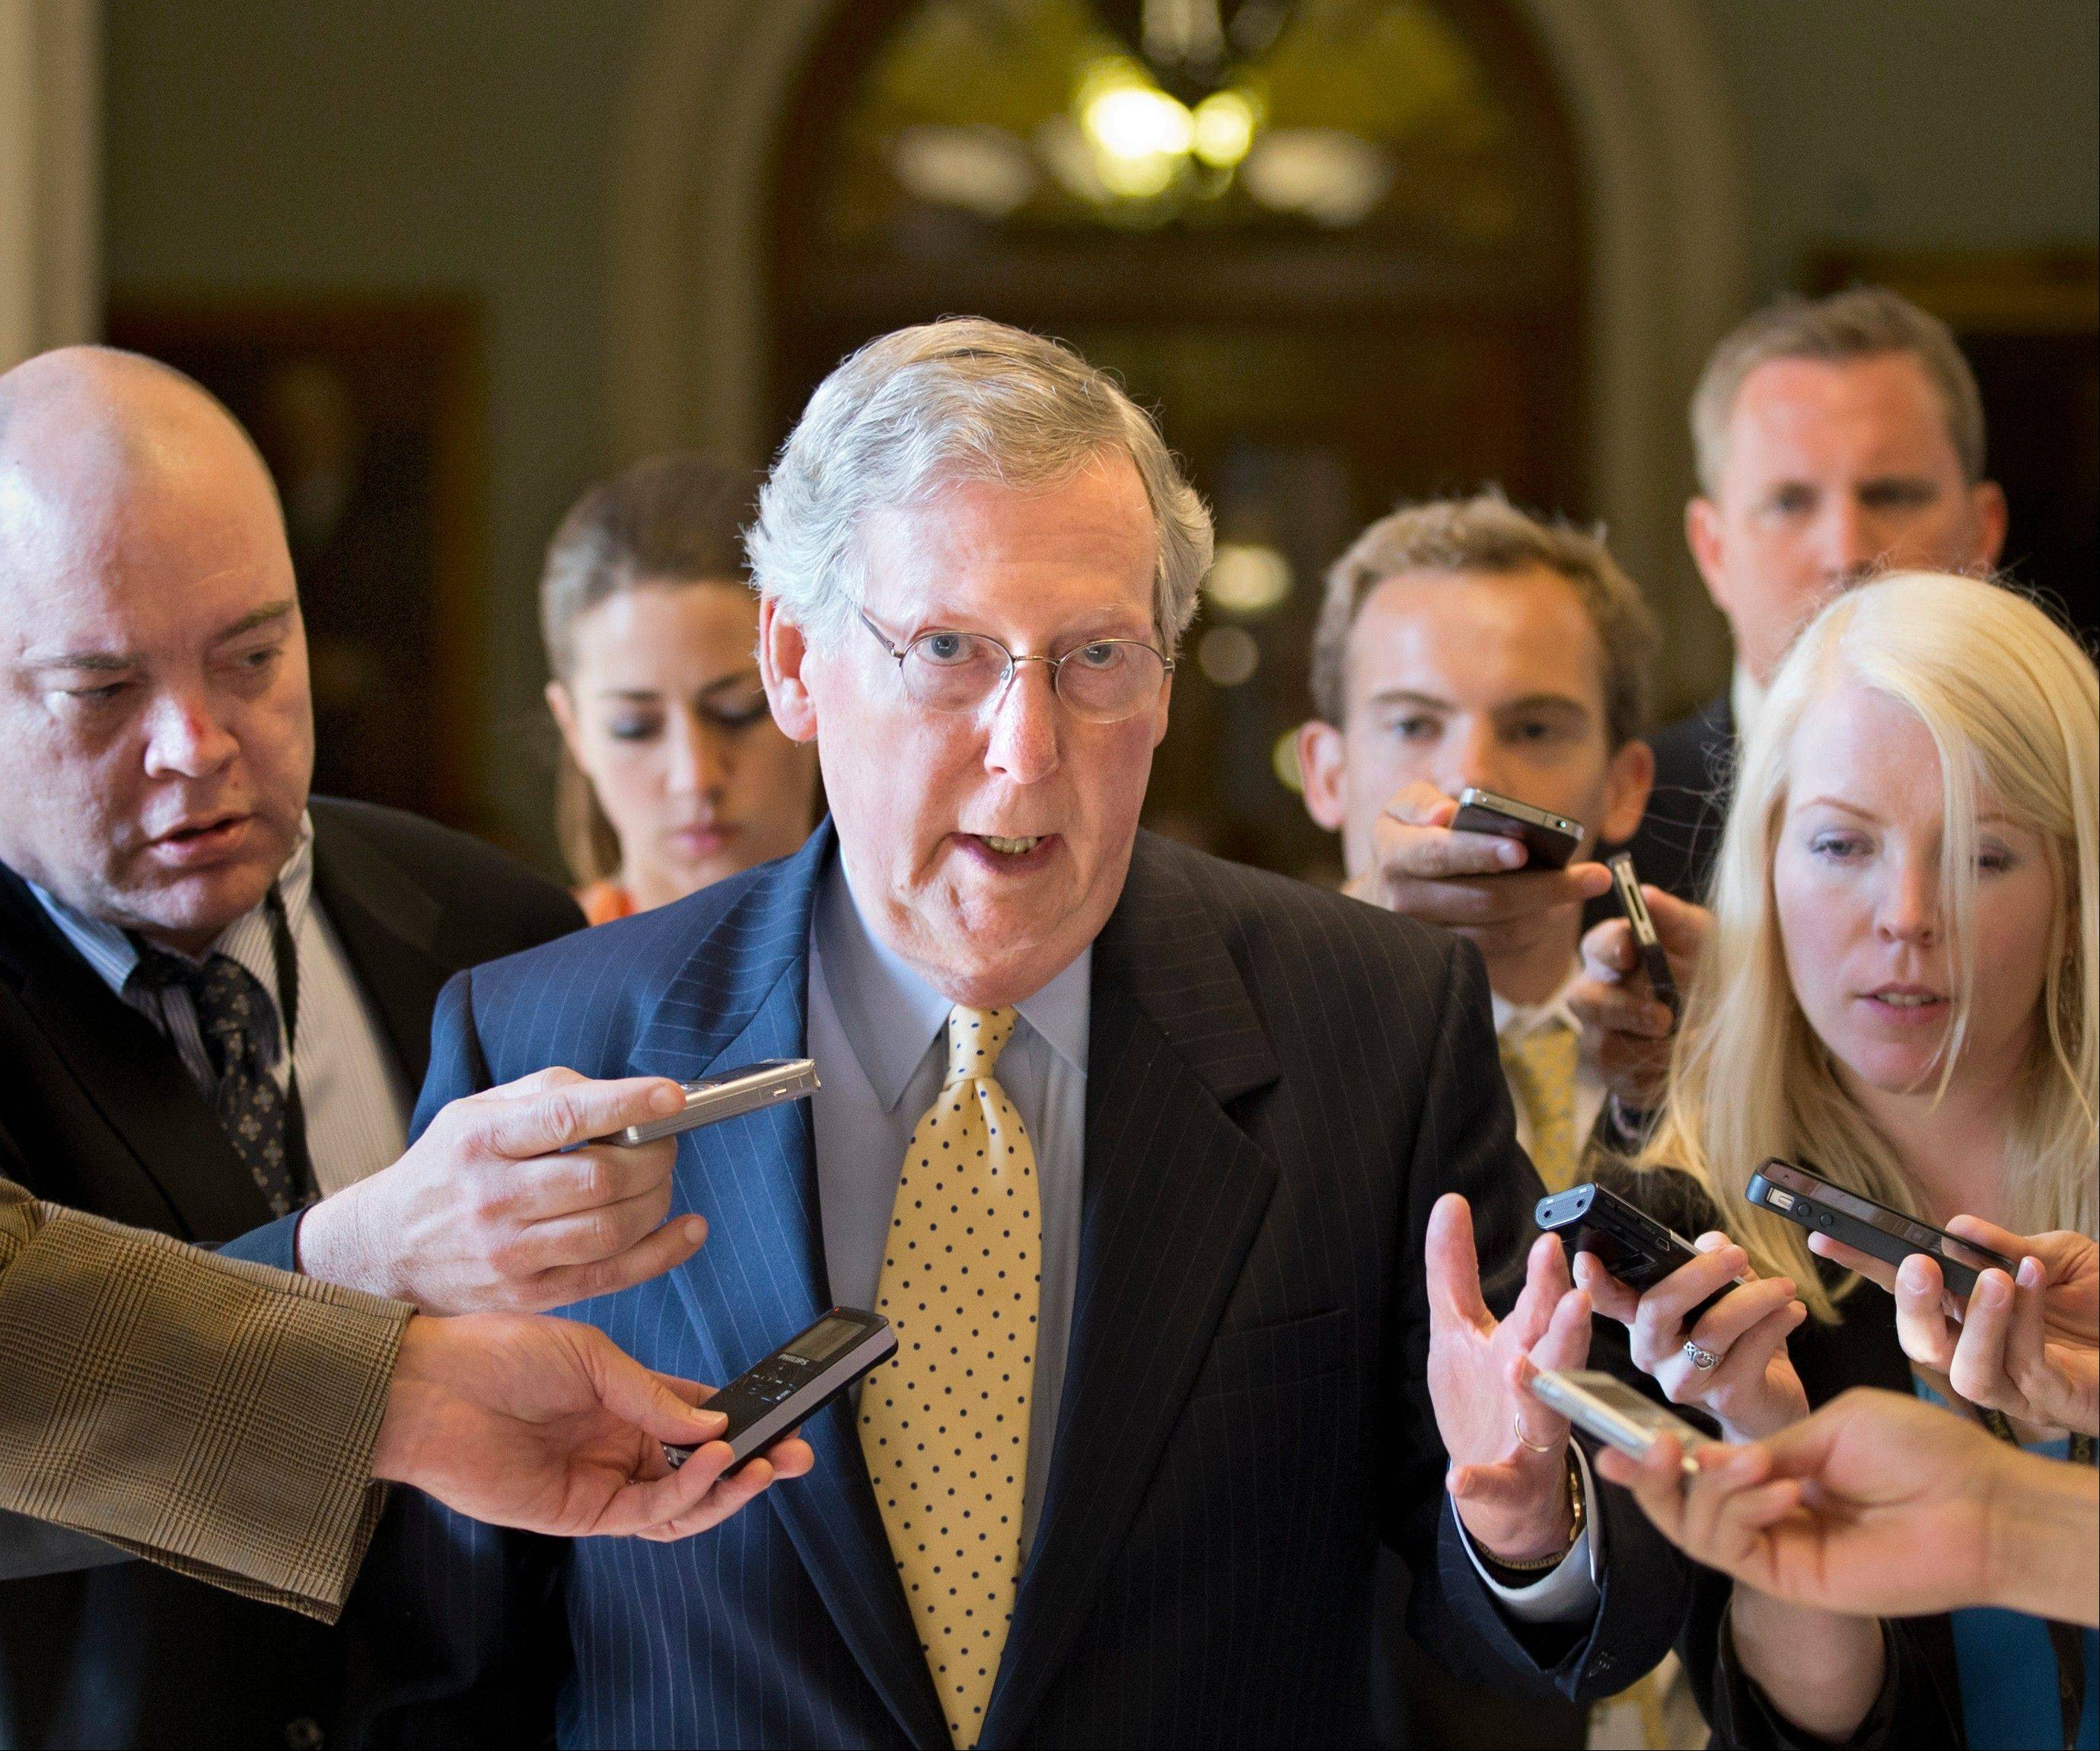 Senate Republican Leader Mitch McConnell of Kentucky is surrounded by reporters as he returns to his office after meeting with Senate Majority Leader Harry Reid at the Capitol in Washington Monday.